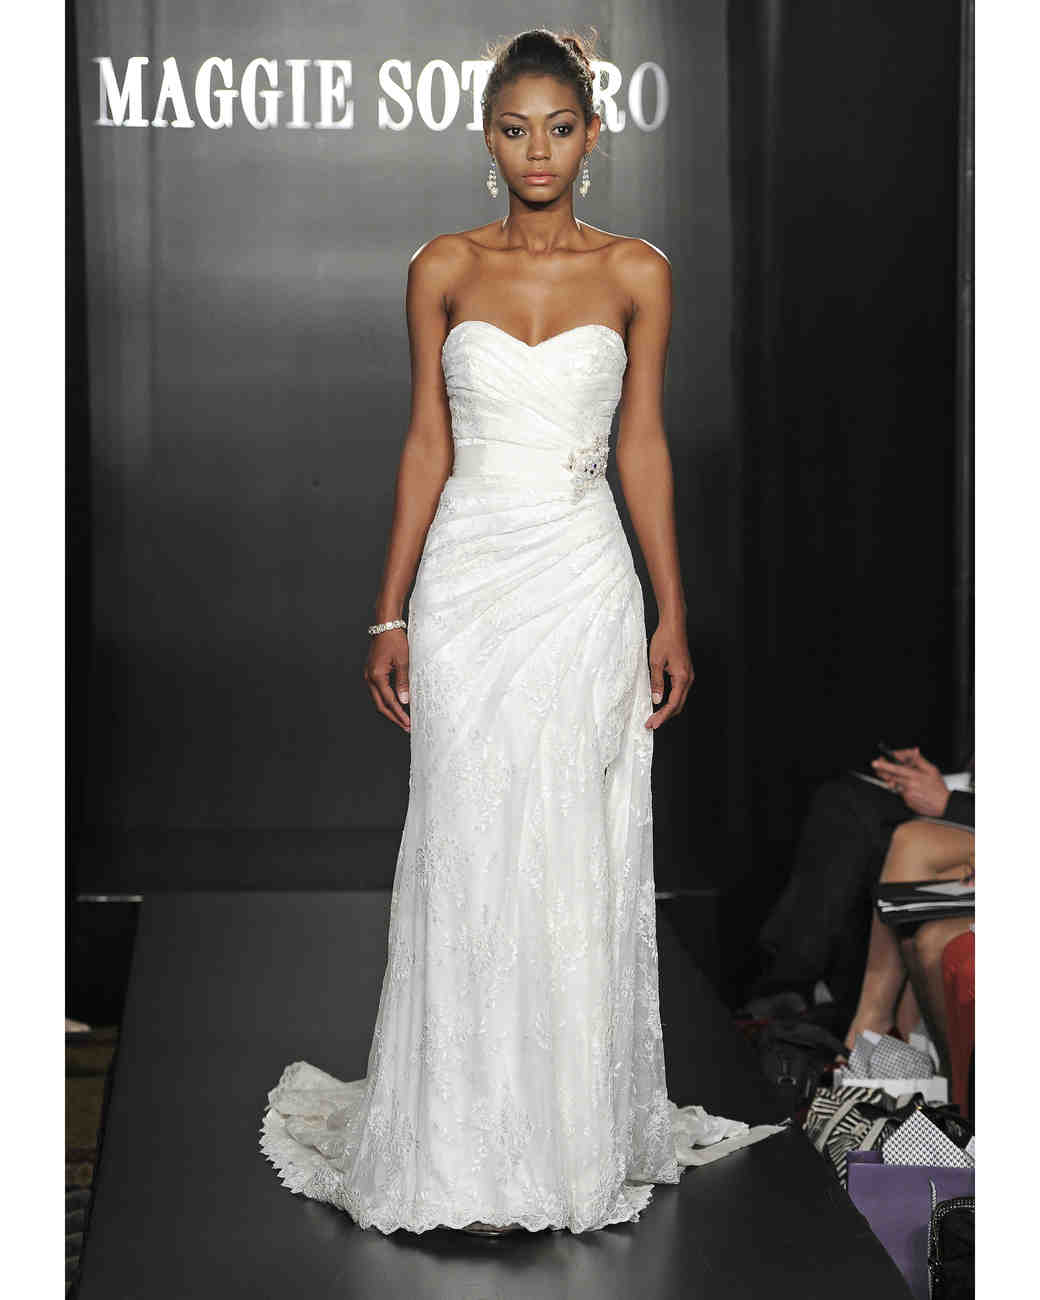 maggie-sottero-spring2013-wd108745-005.jpg